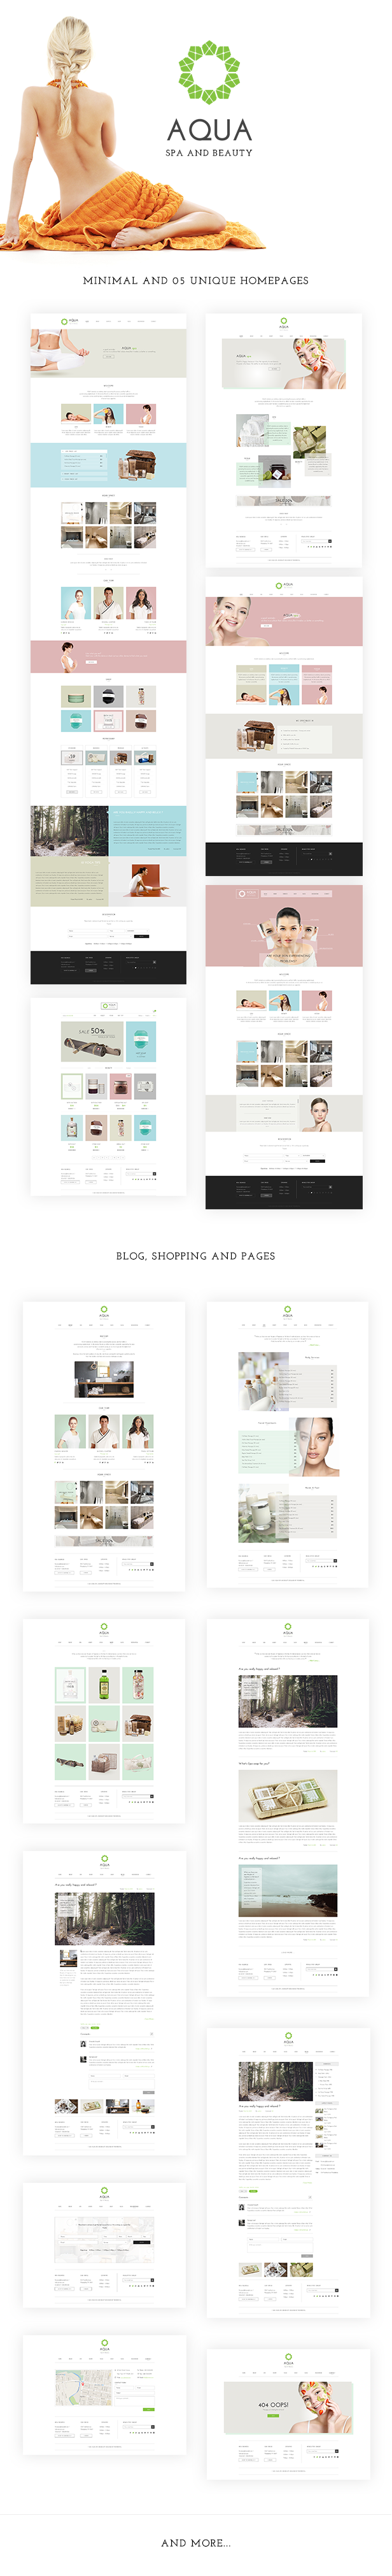 EK4VSgs - Spa and Beauty Joomla VirtueMart Template